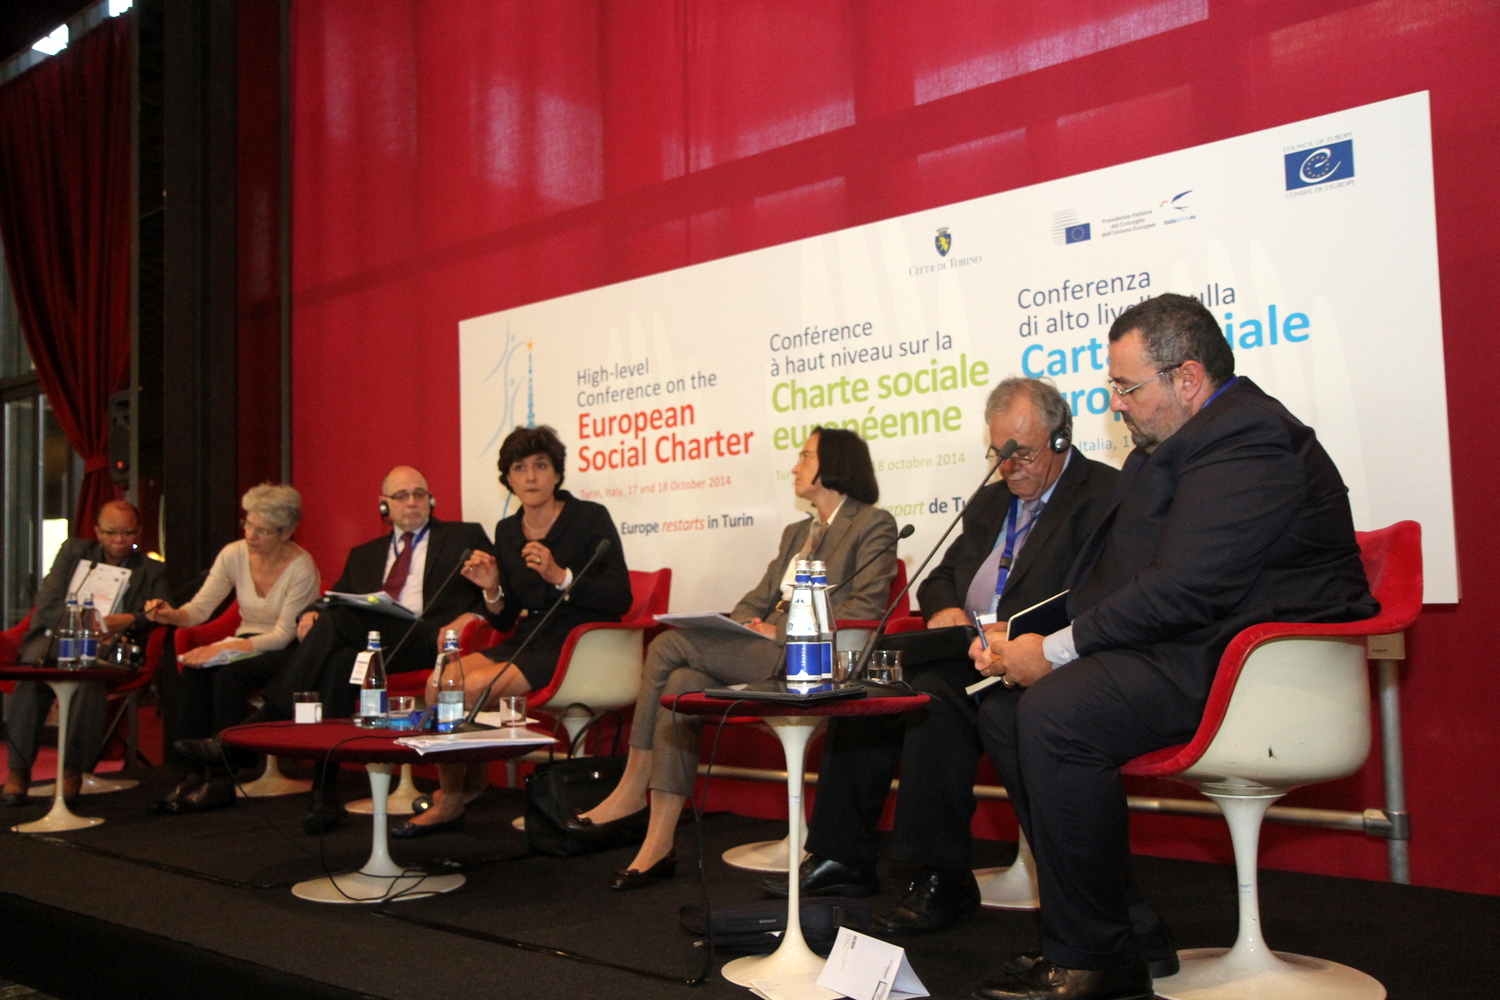 09. High-level Conference on the European Social Charter (Turin, 17-18 October 2014).jpg